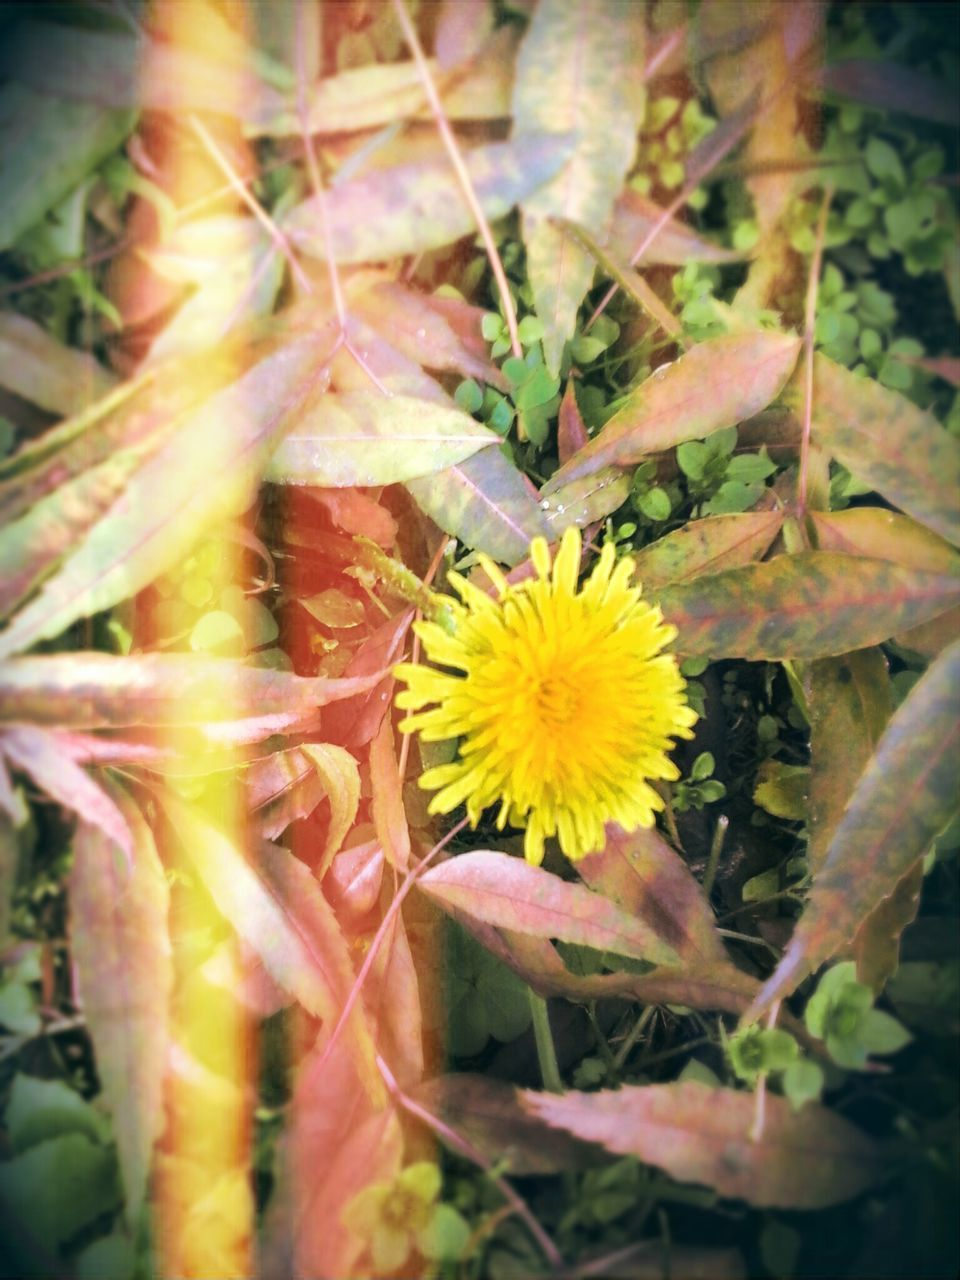 flower, plant, growth, nature, beauty in nature, fragility, no people, leaf, freshness, petal, flower head, close-up, outdoors, day